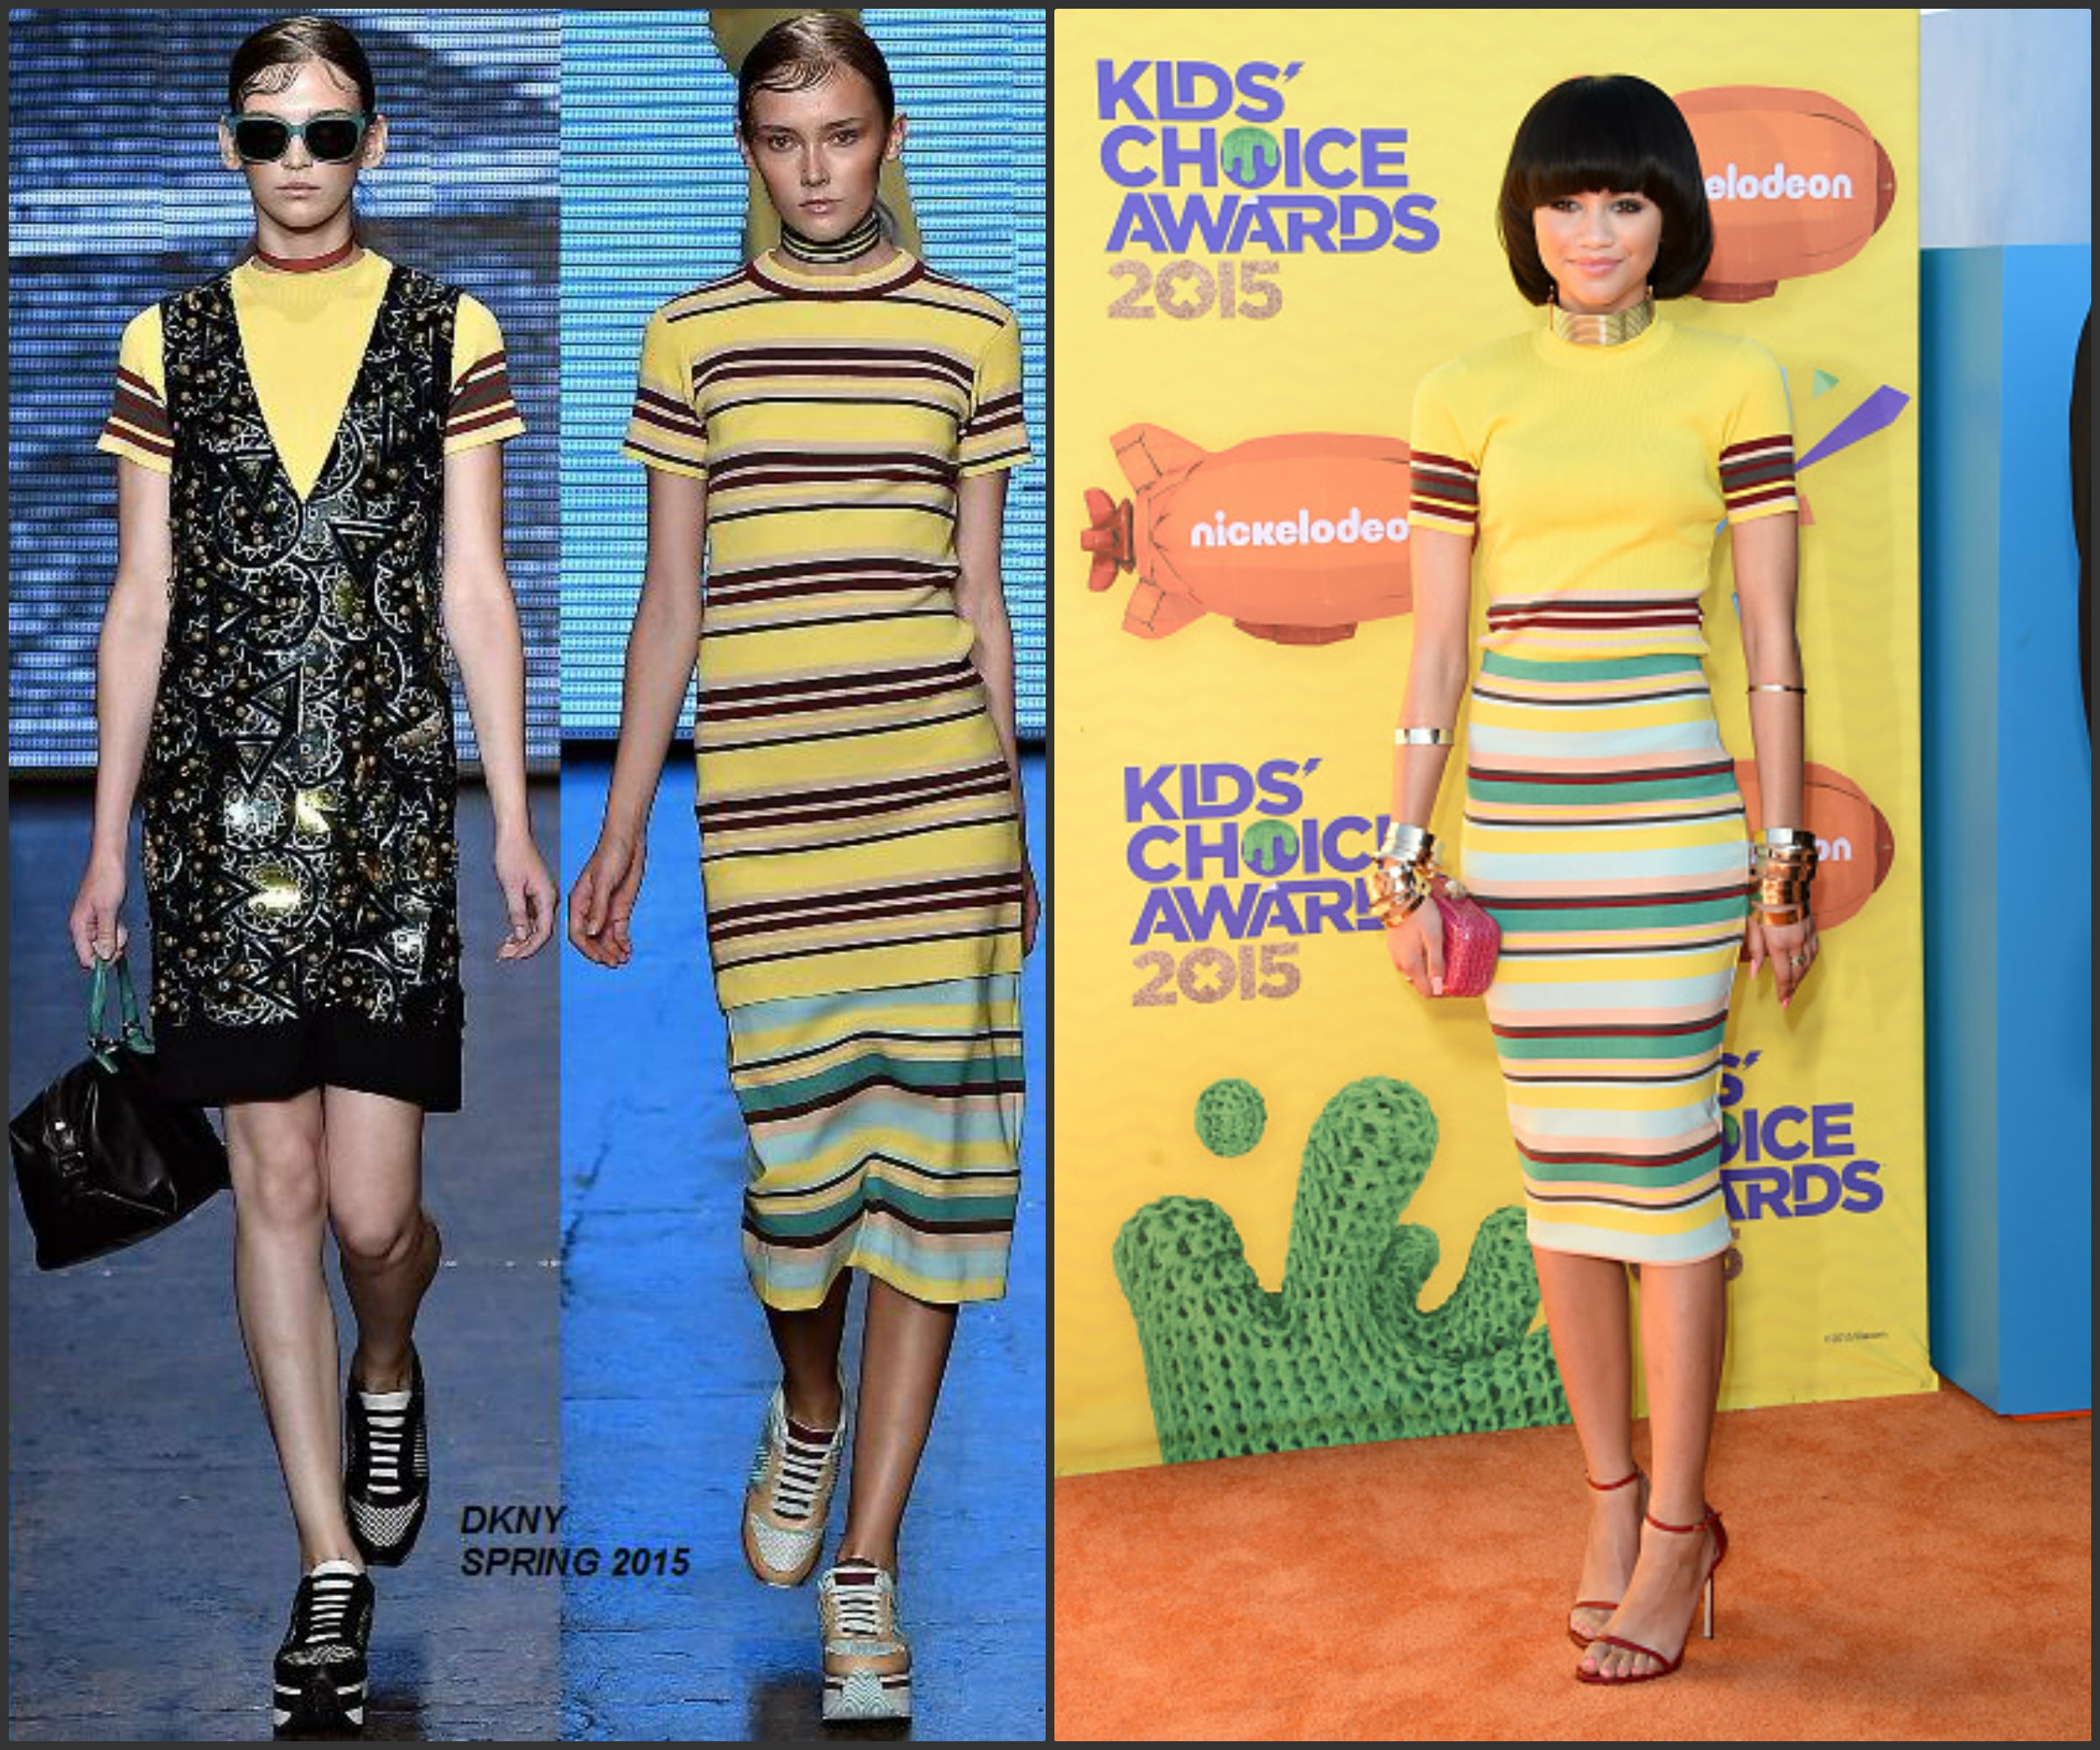 Zendaya-Coleman-in-DKNY-at-the-28th-Annual-Kids-Choice- Awards